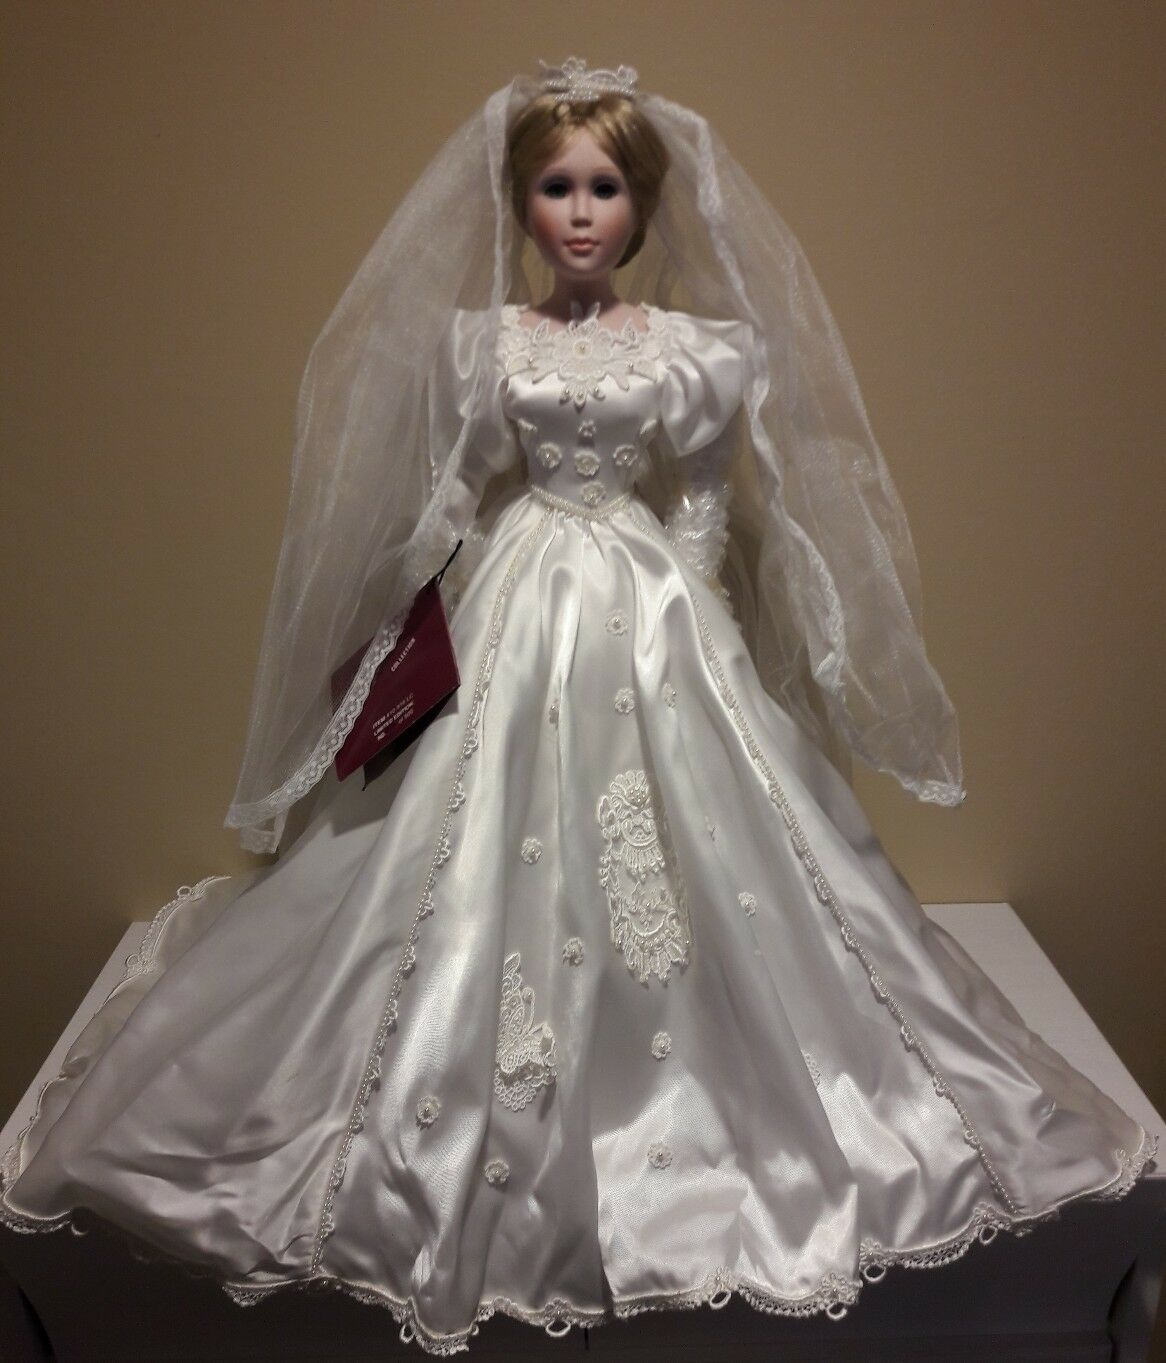 Avia limited collection porcelain bambola in  wedding dress CYNTHIA limited edizione  vendita outlet online